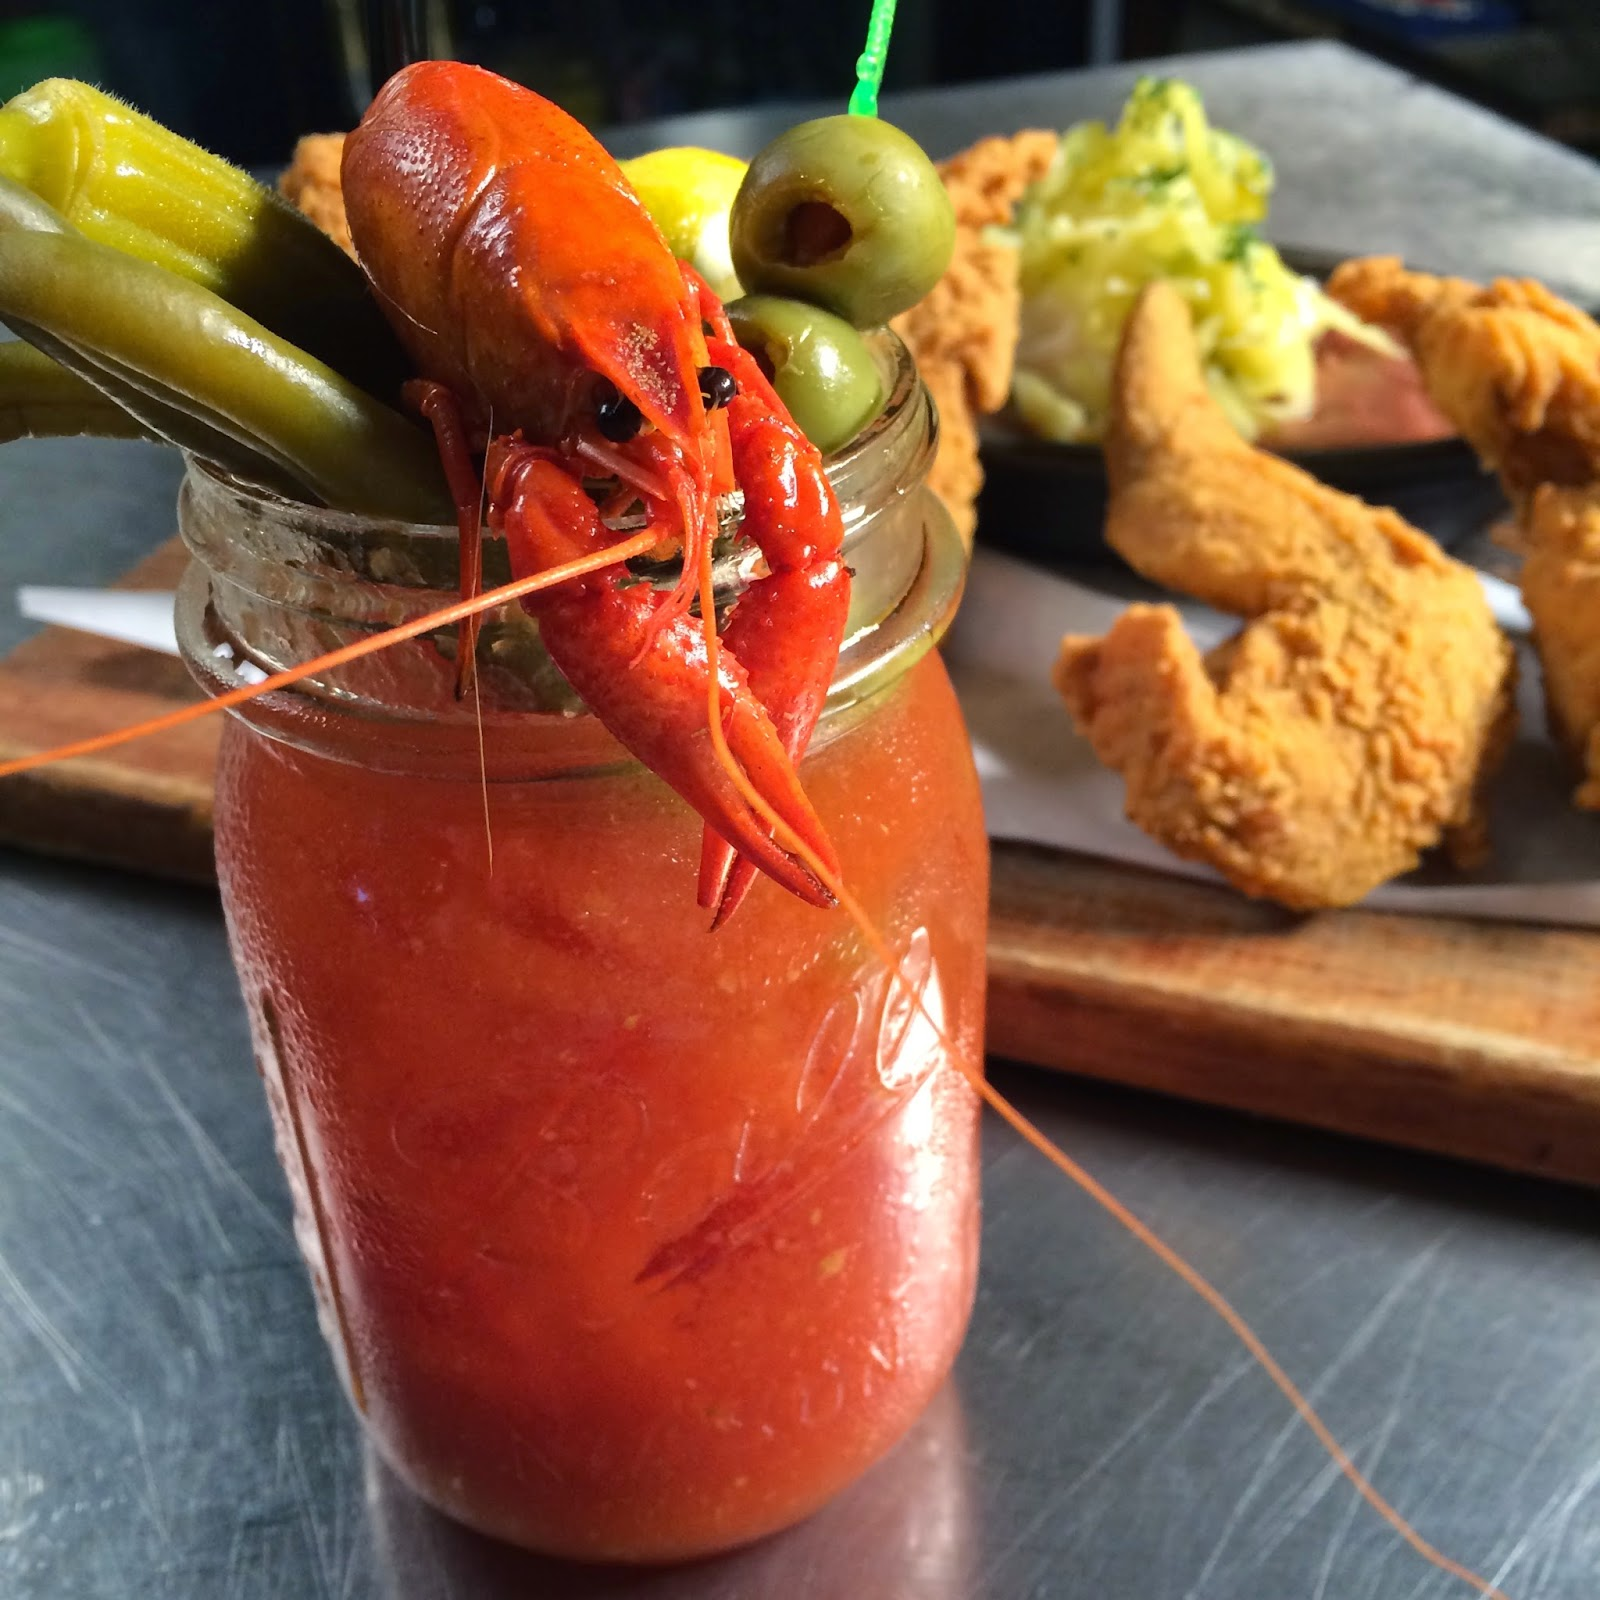 Chef Sam prepared this beautiful and delicious Bloody Mary while Chef Cory made one of my favorites: fried rabbit with red beans and rice.